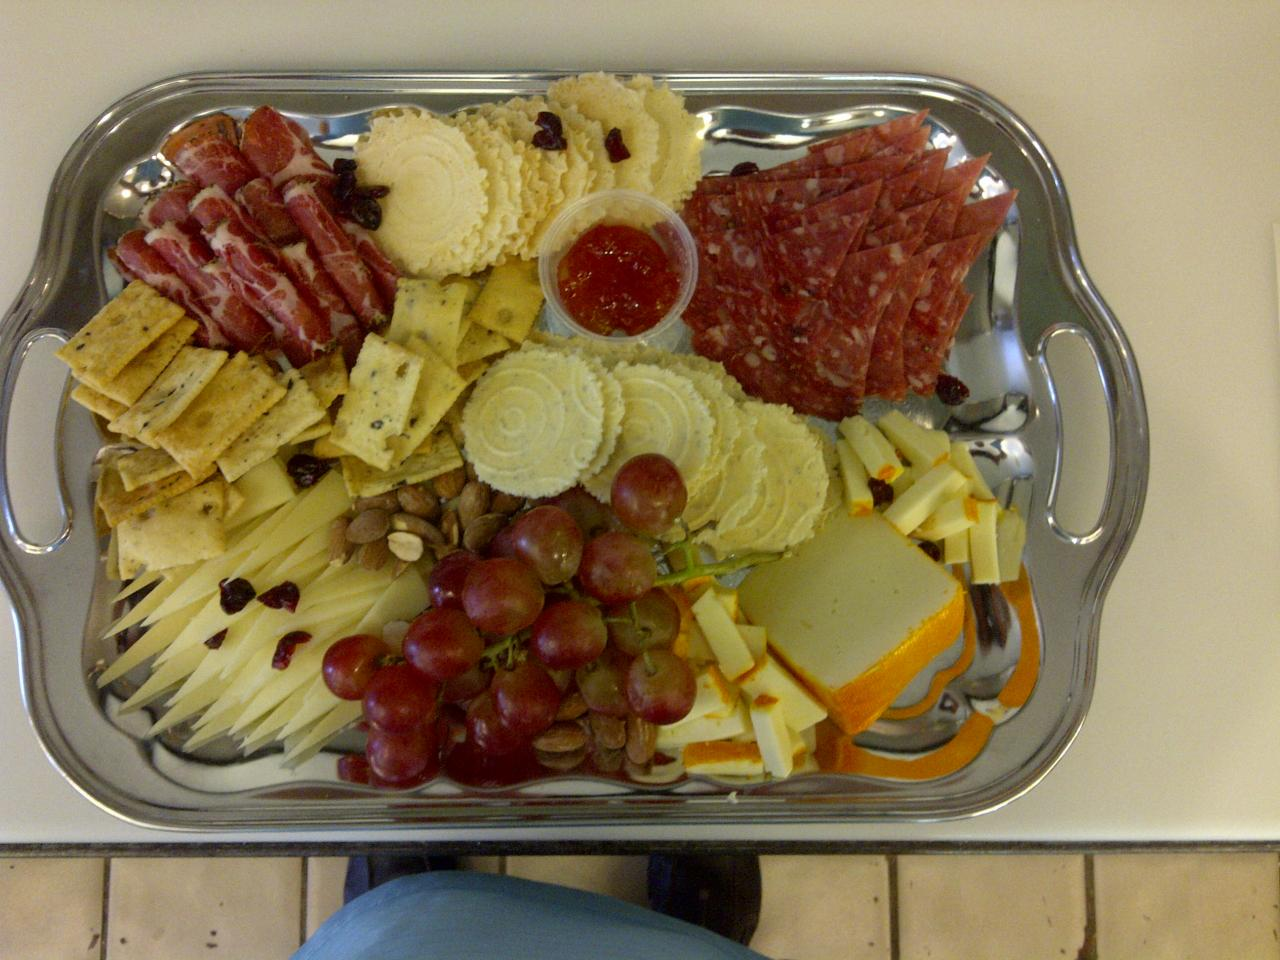 & Cheese \u0026 Crackers - Catering Pictures